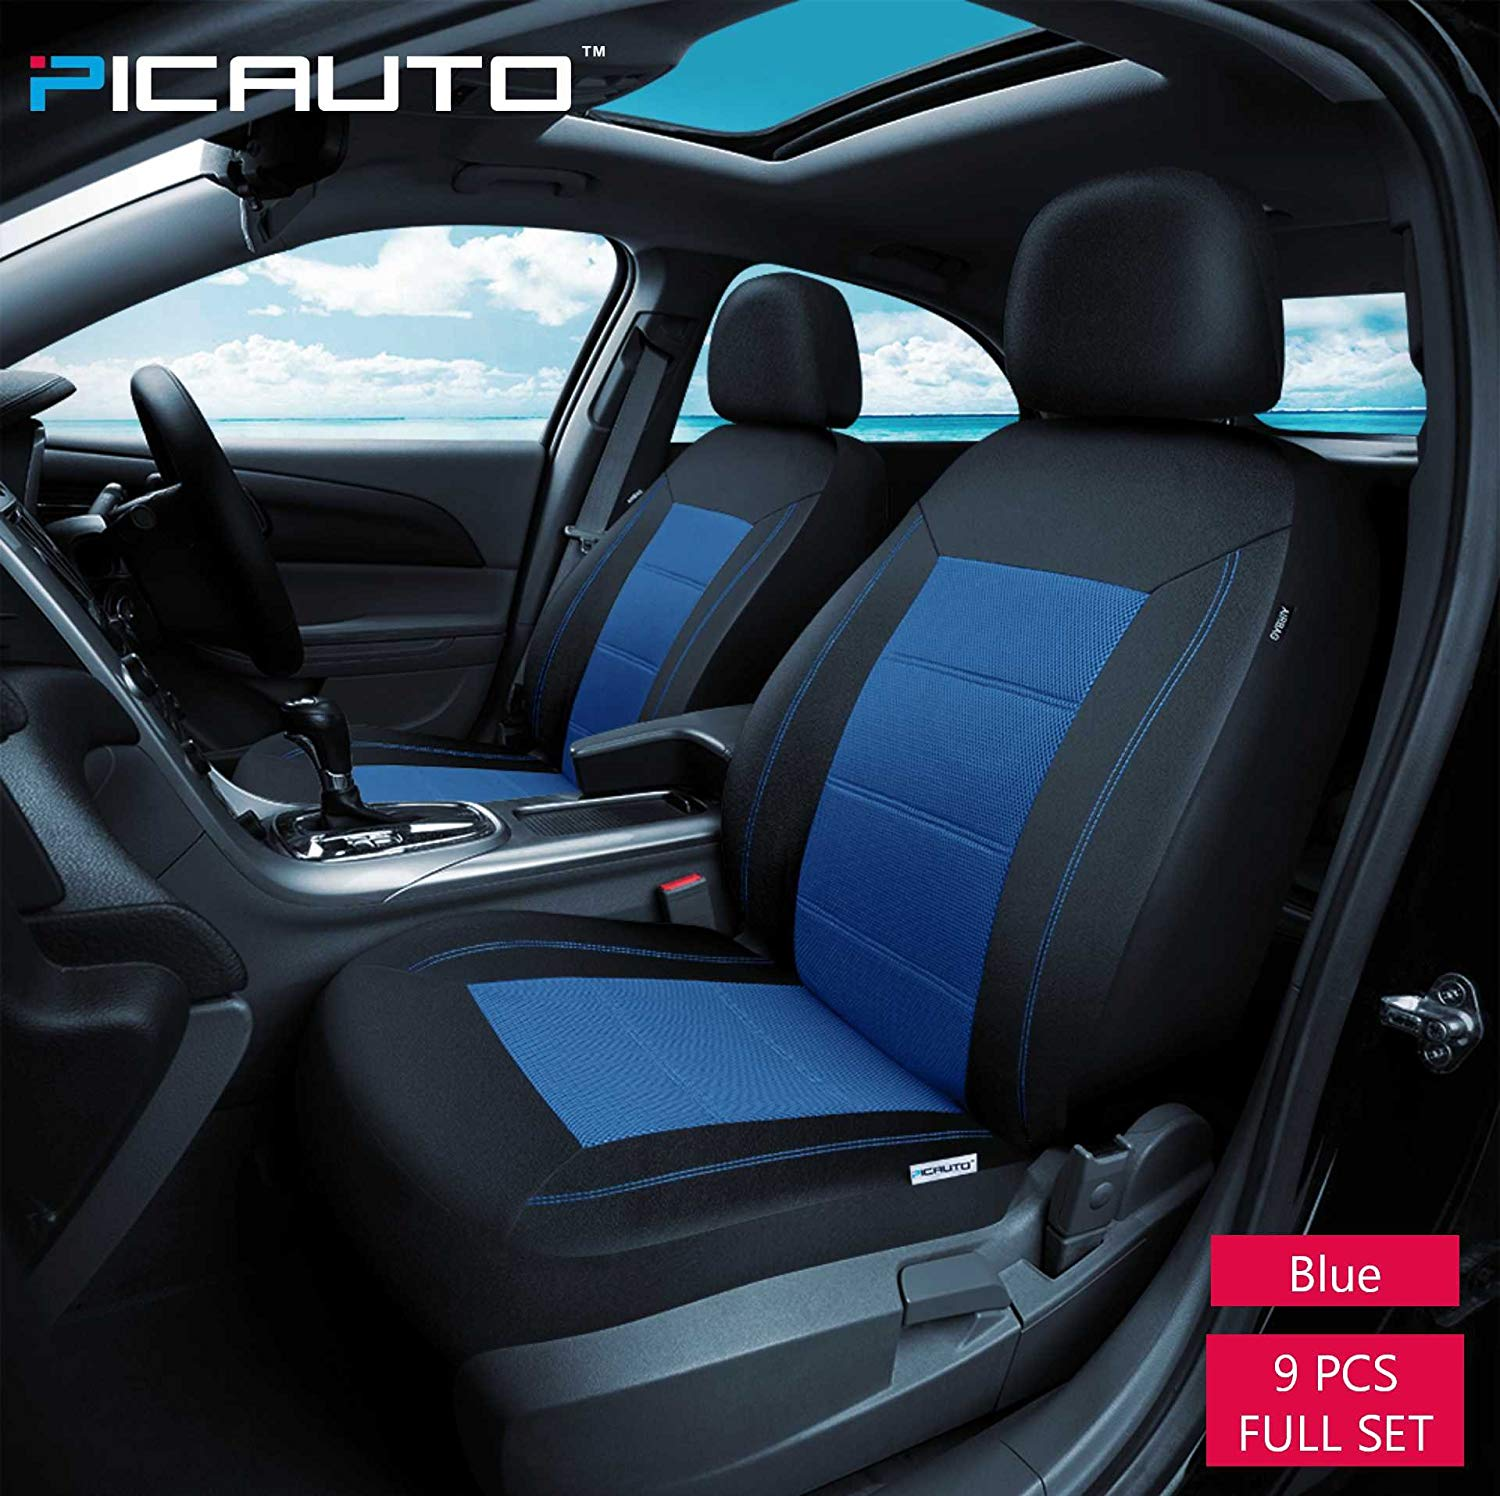 PIC Auto Universal Fit Full Set Mesh and Leather Car Seat Cover